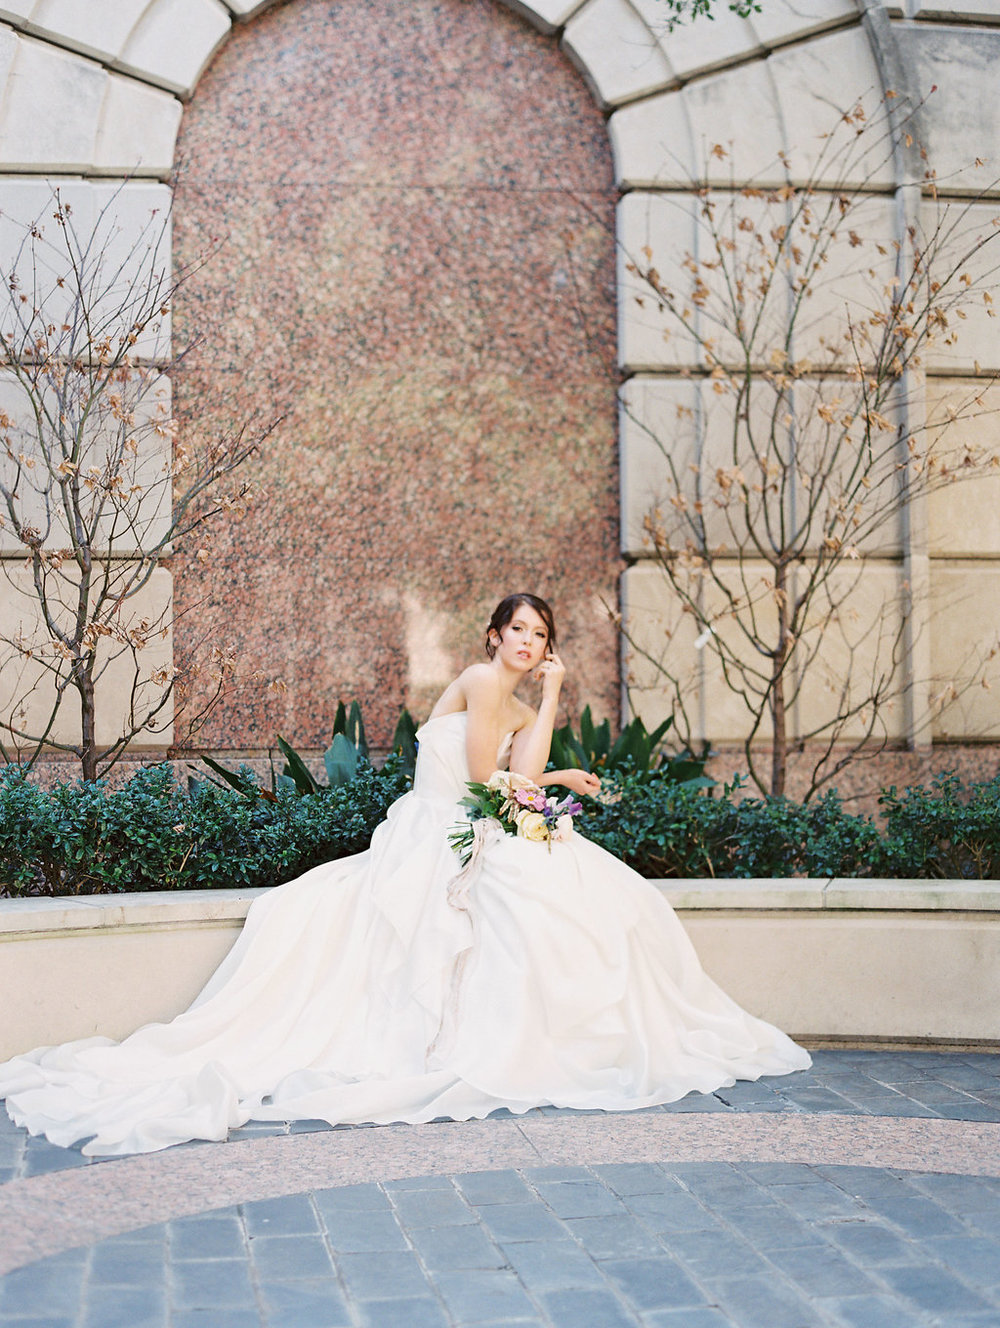 Carol Hannah Bridal Senara Gown Hotel-Crescent-Dallas-Wedding-Editorial-202.jpg